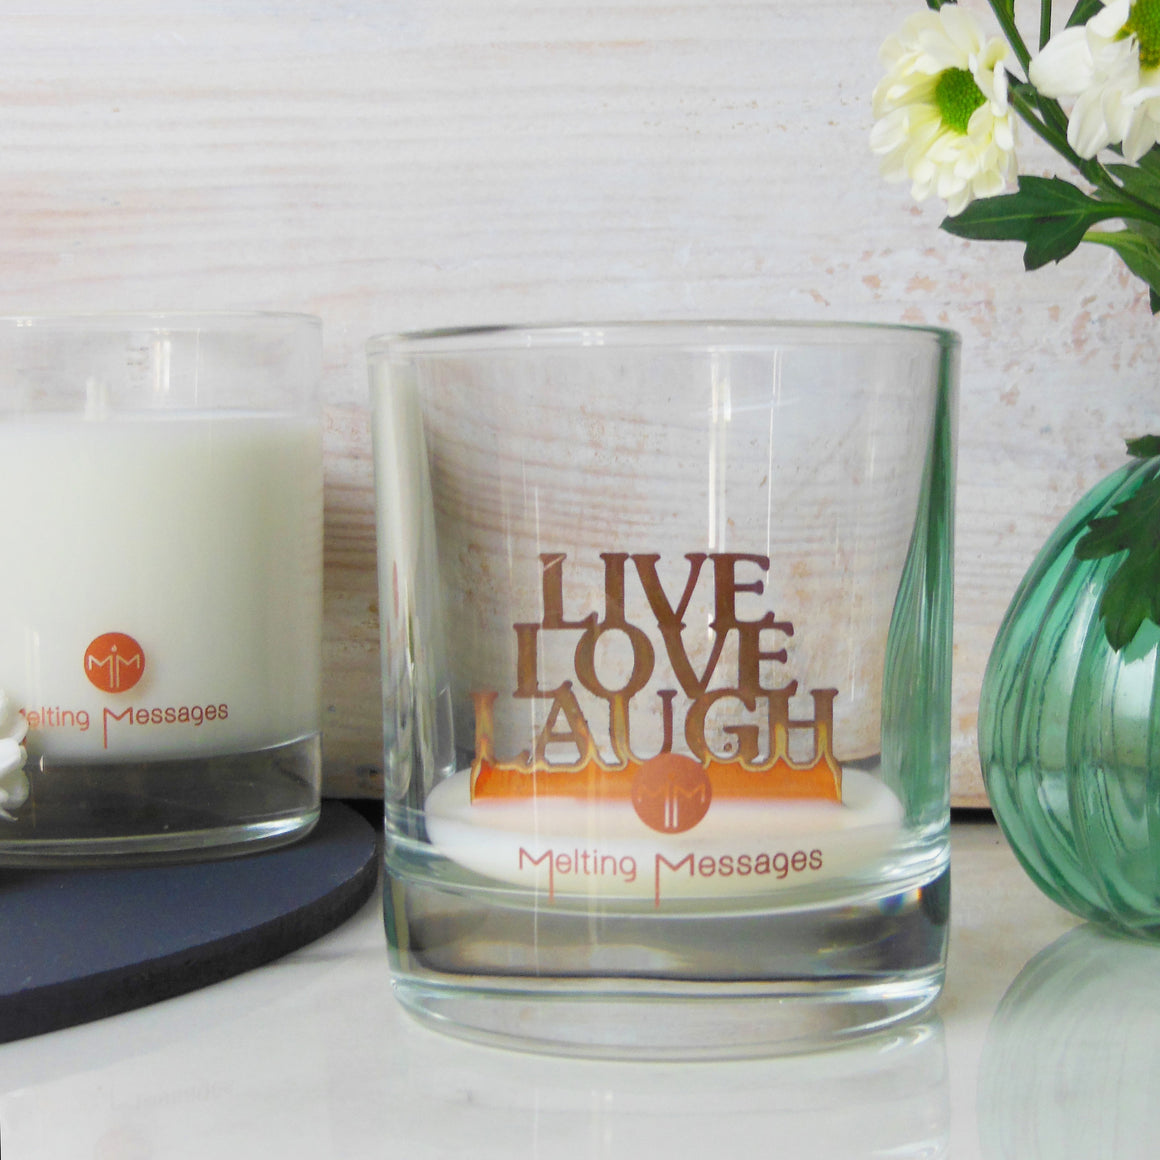 Melting Messages 'Live Love Laugh' Copper Candle - The Love Trees